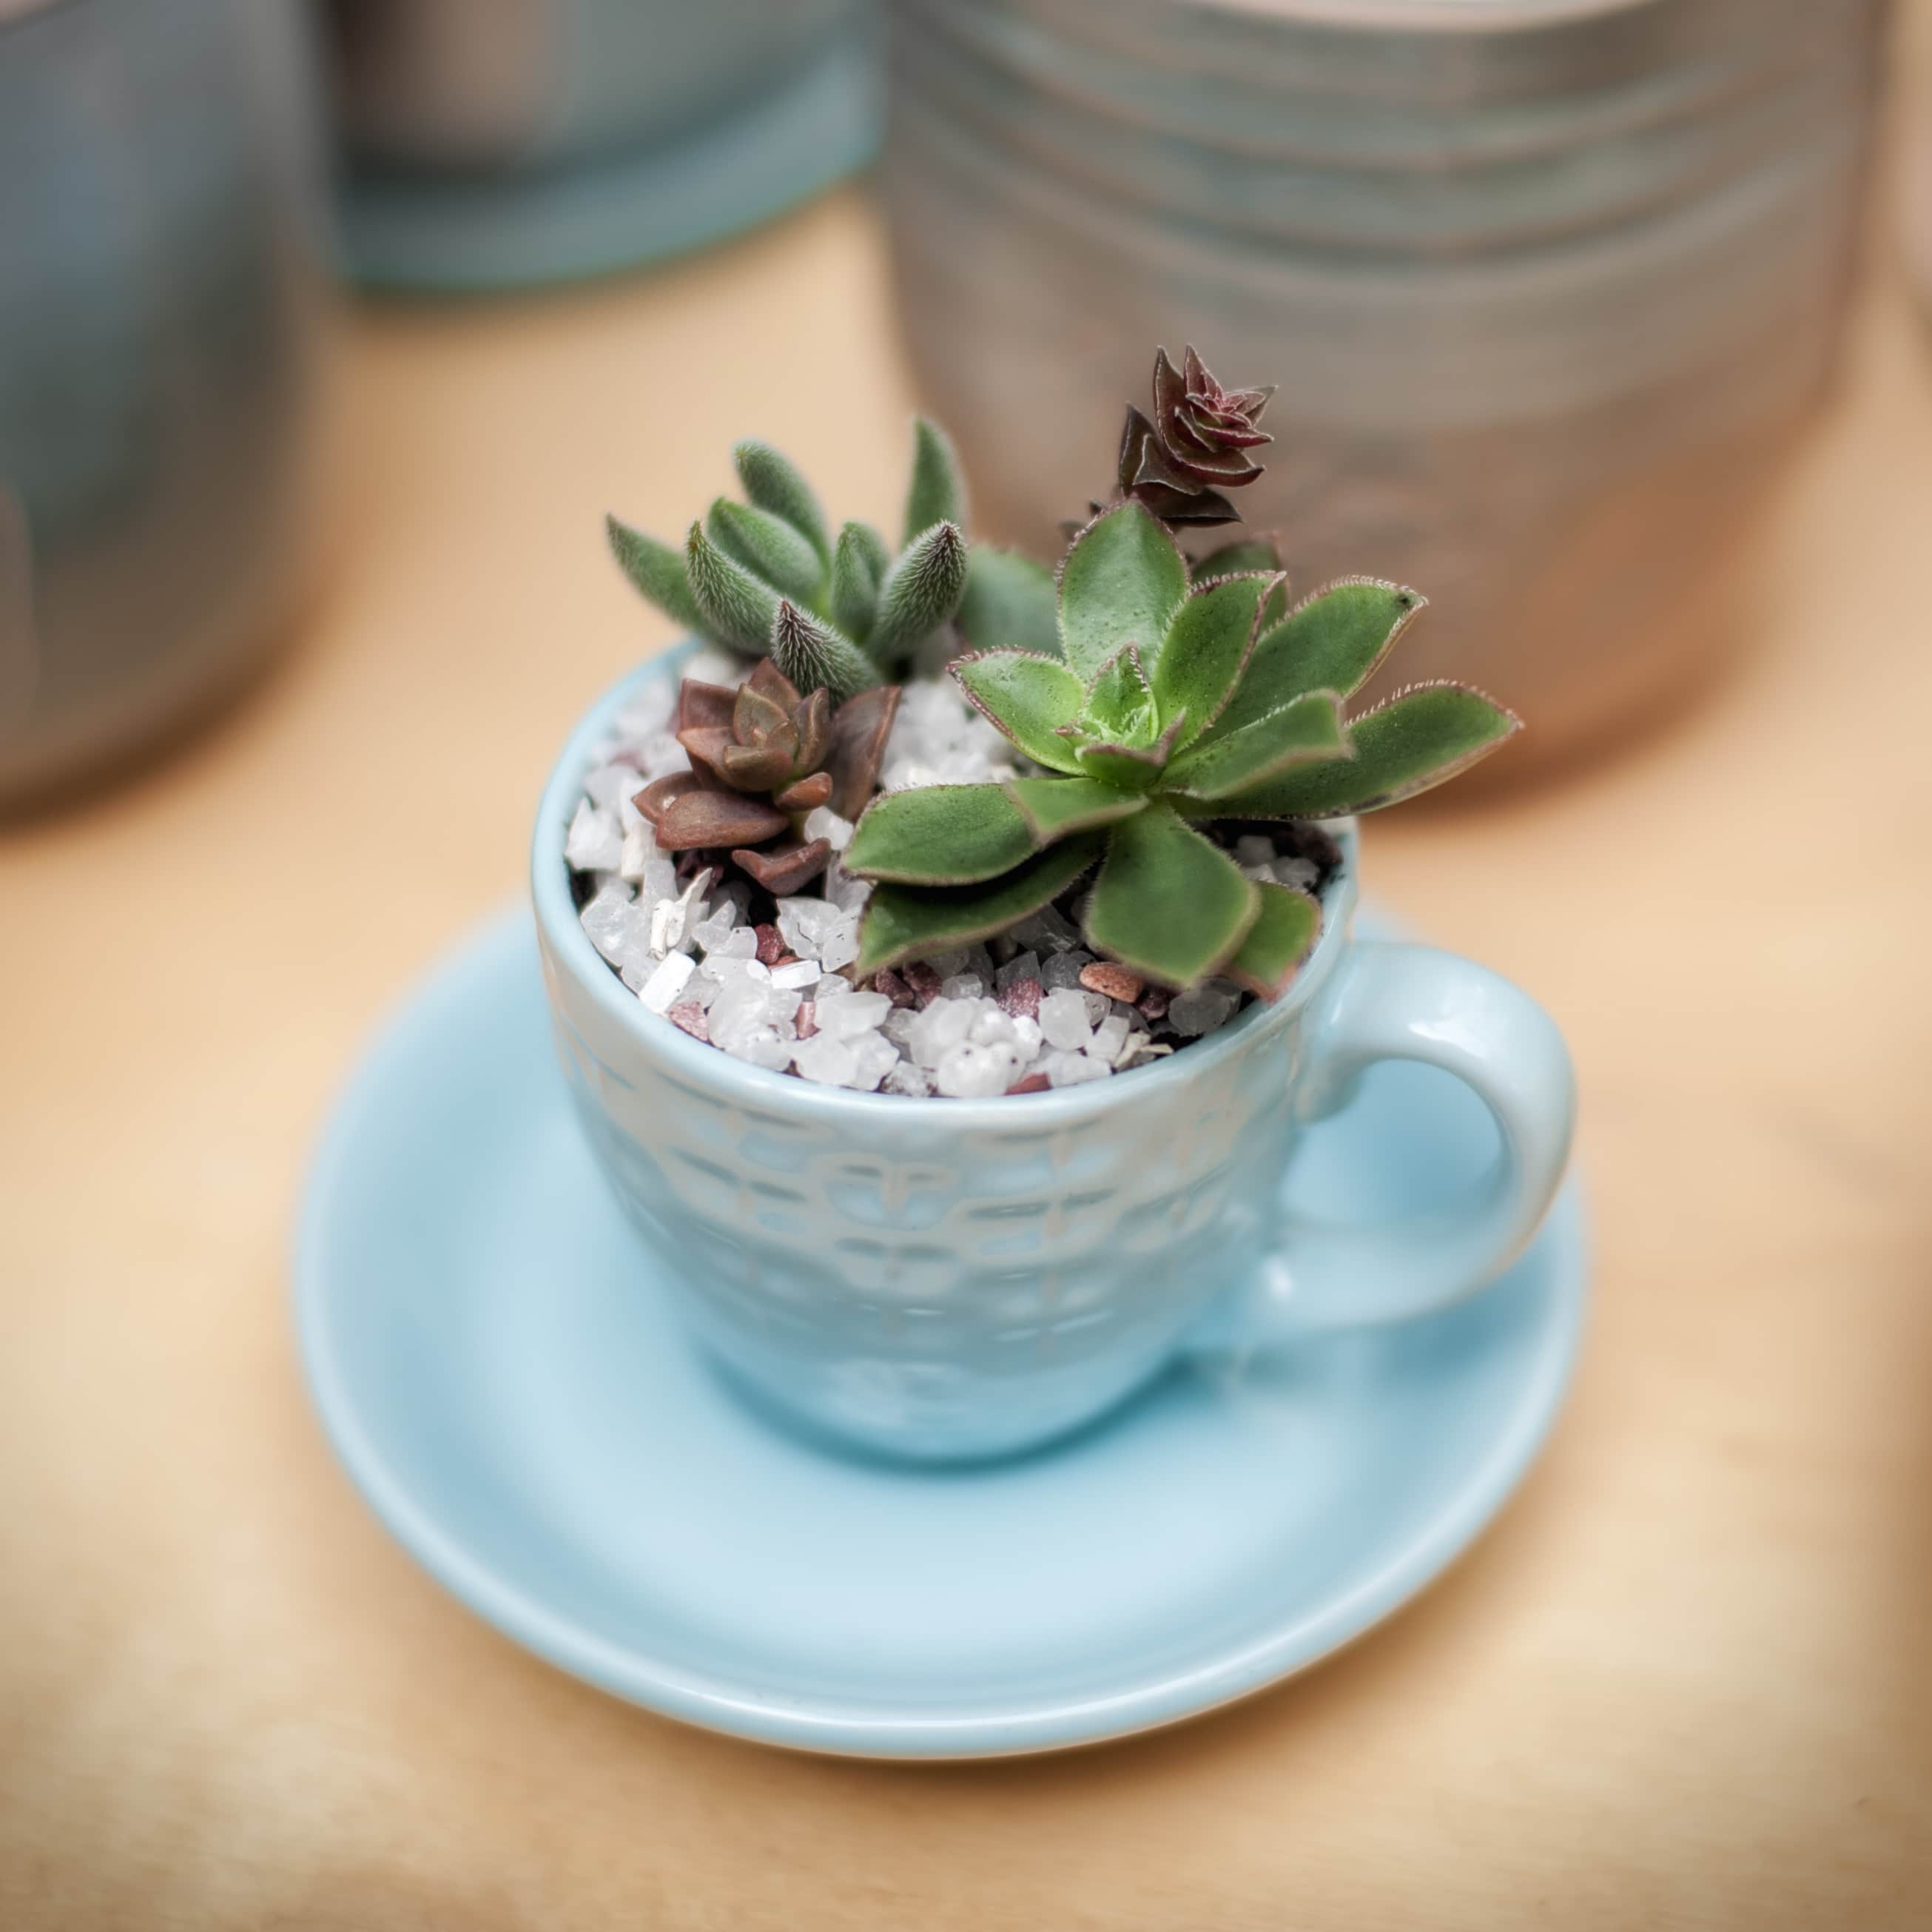 Succulent plants in the blue tea cup with saucer. Shallow DOF, square composition with vignette.